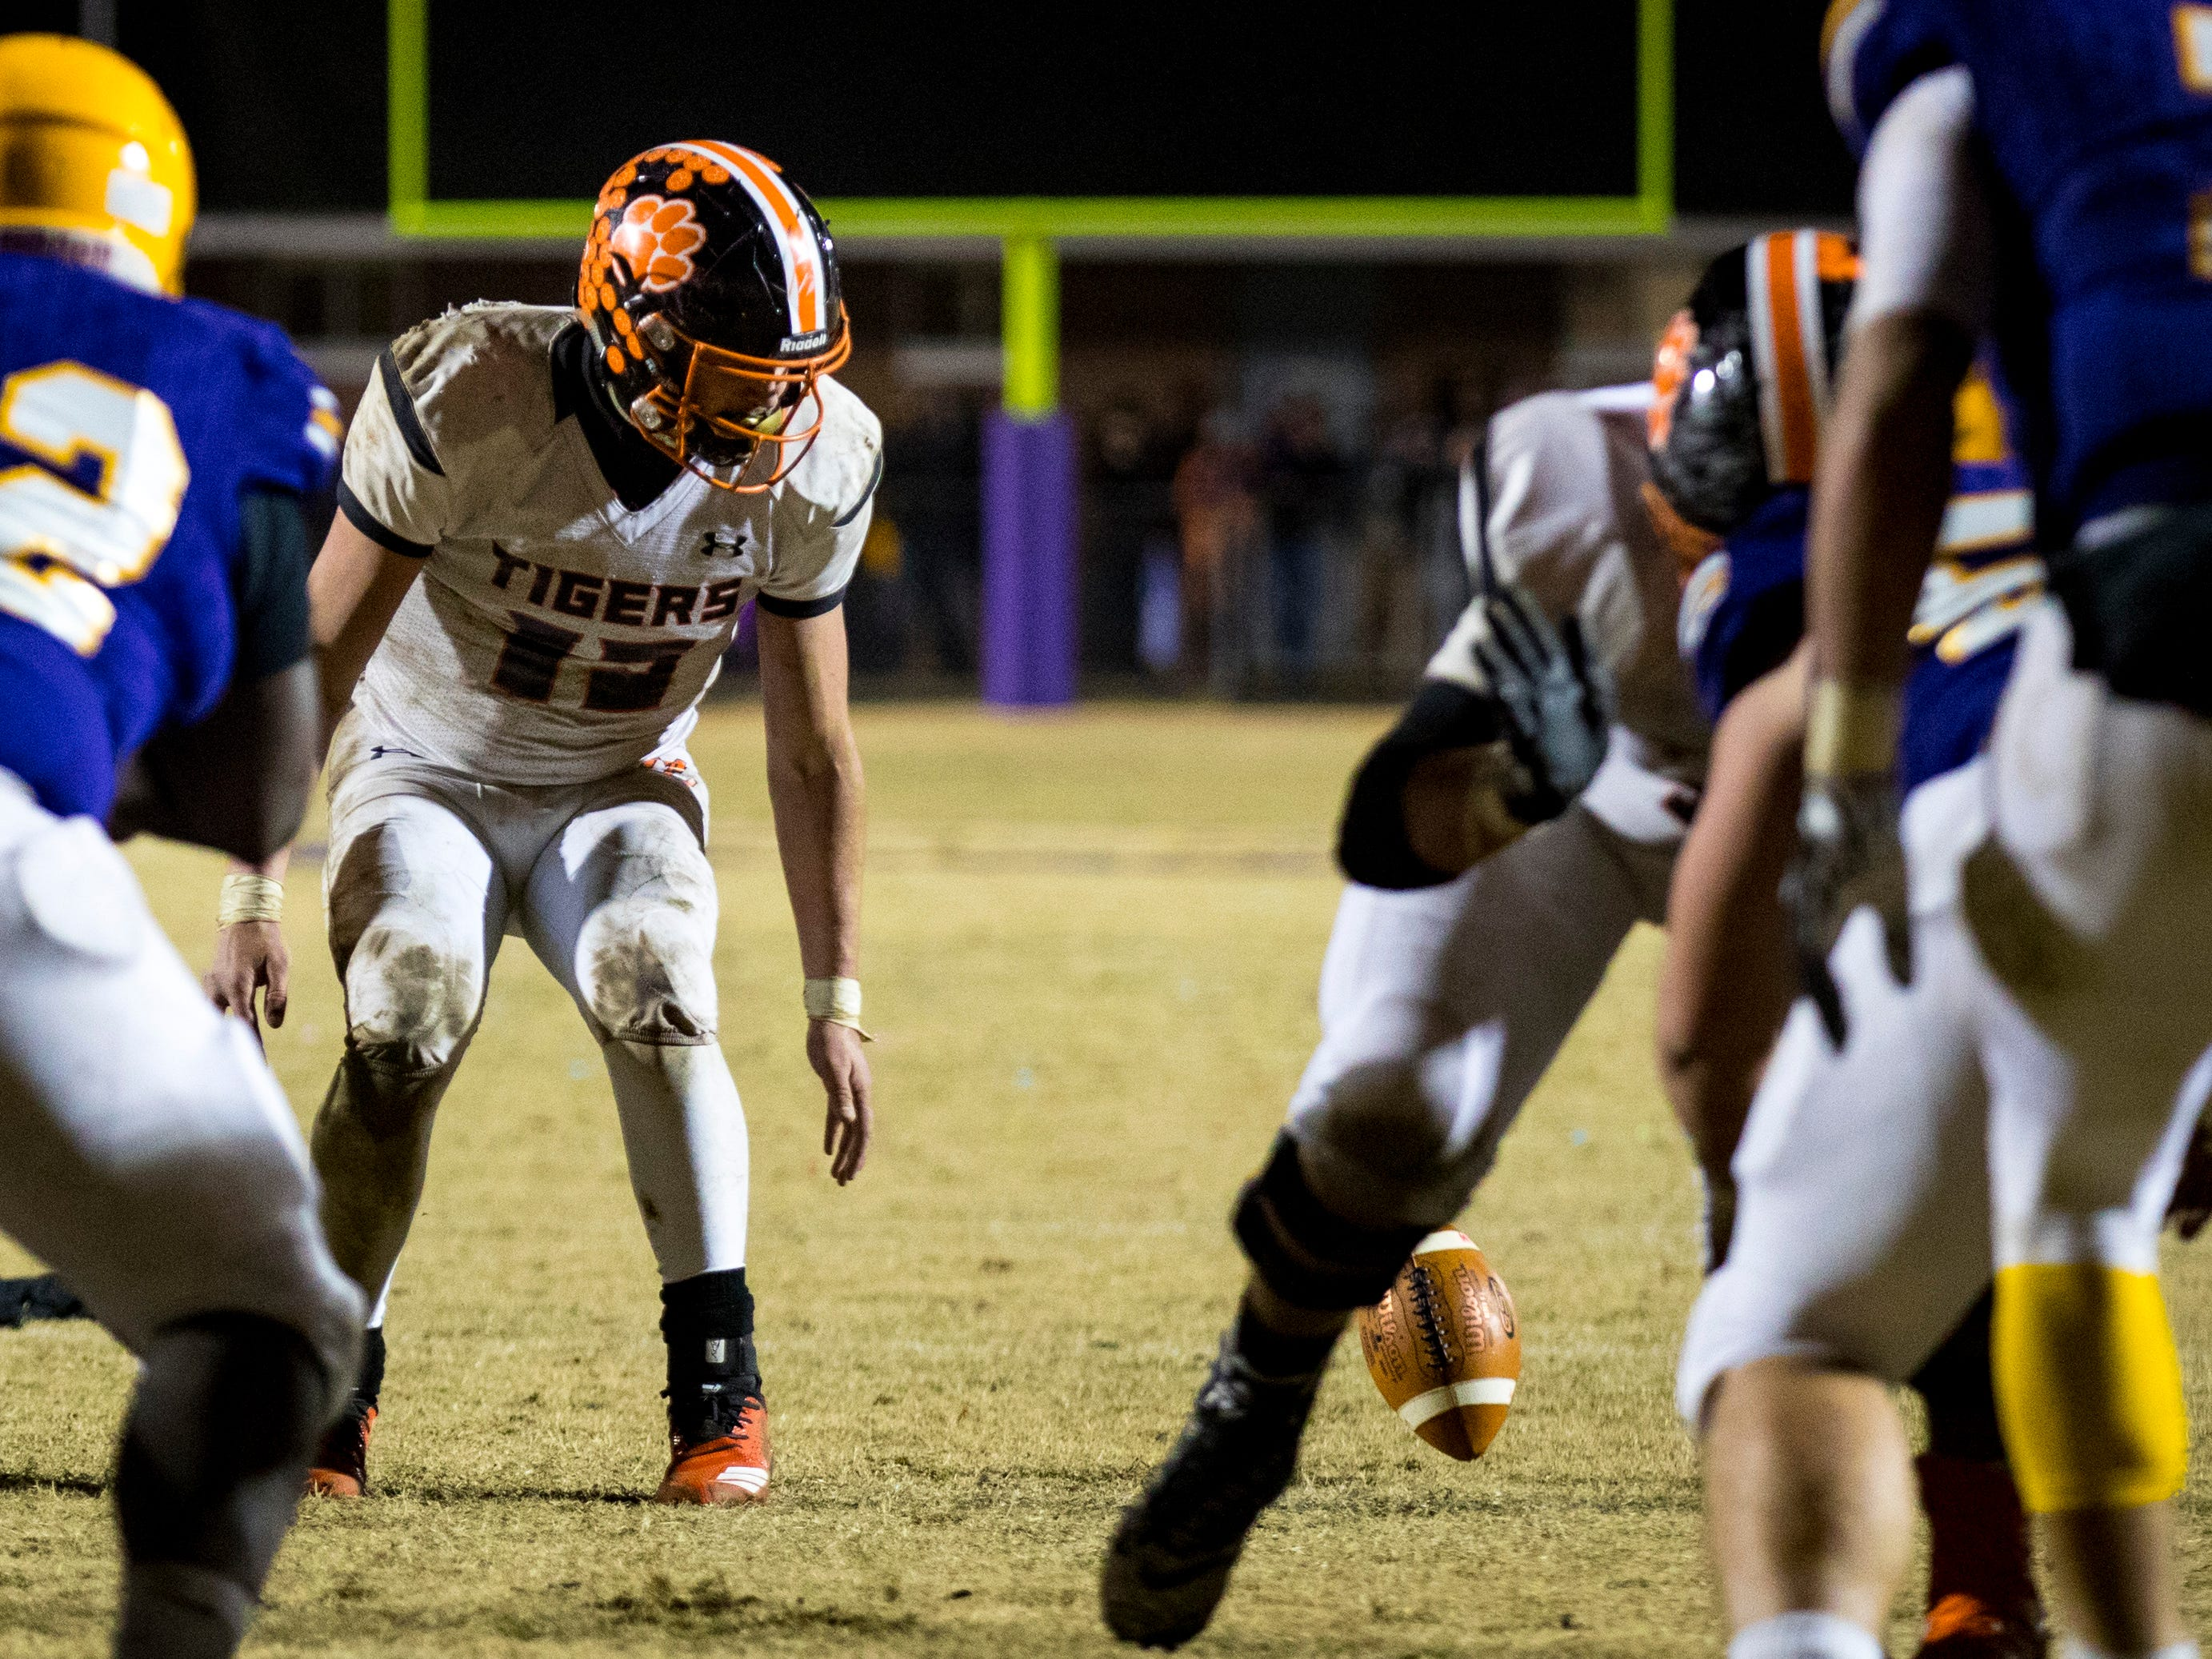 Meigs County's Aaron Swafford (19) looks at a fumbled snap during Trousdale County's game against Meigs County at Jim Satterfield Stadium in Hartsville on Friday, Nov. 23, 2018.